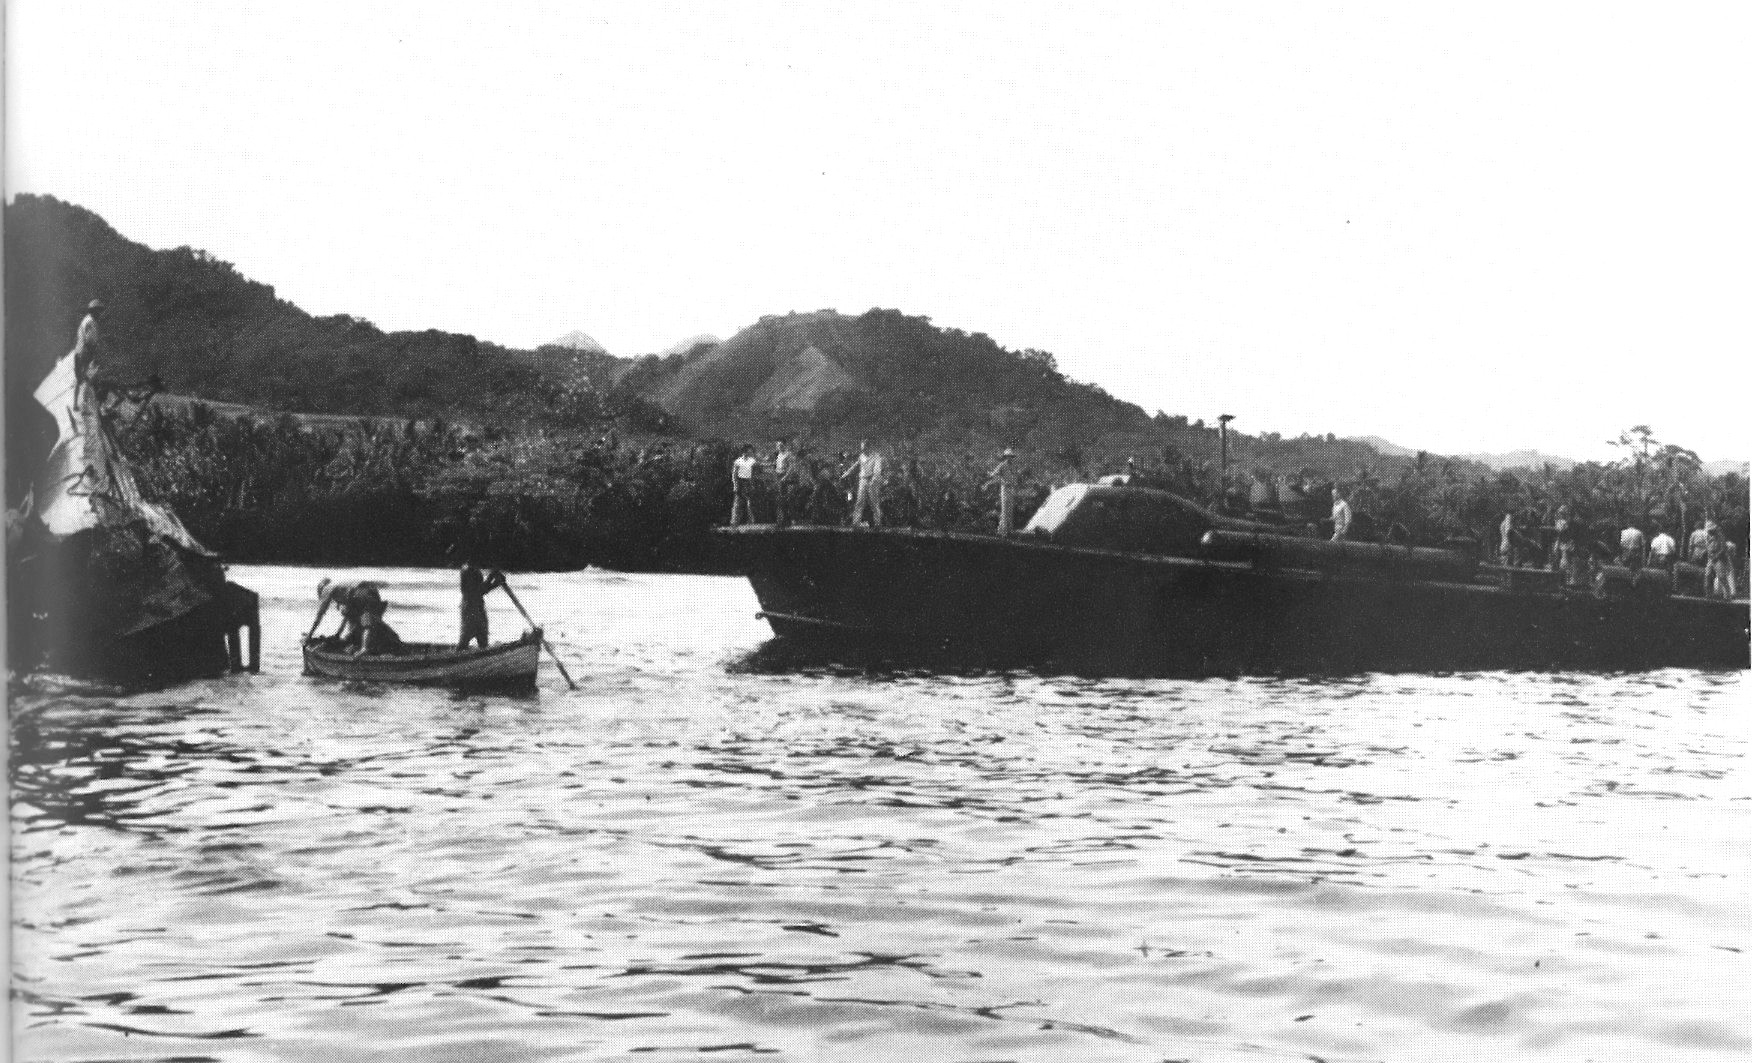 The crew of U.S. PT boat PT-59 inspects the wreckage of Japanese submarine I-1 at Kamimbo on Guadalcanal, February, 1943. I-1 had been sunk during January 1943 by HMNZS Kiwi and HMNZS Moa.